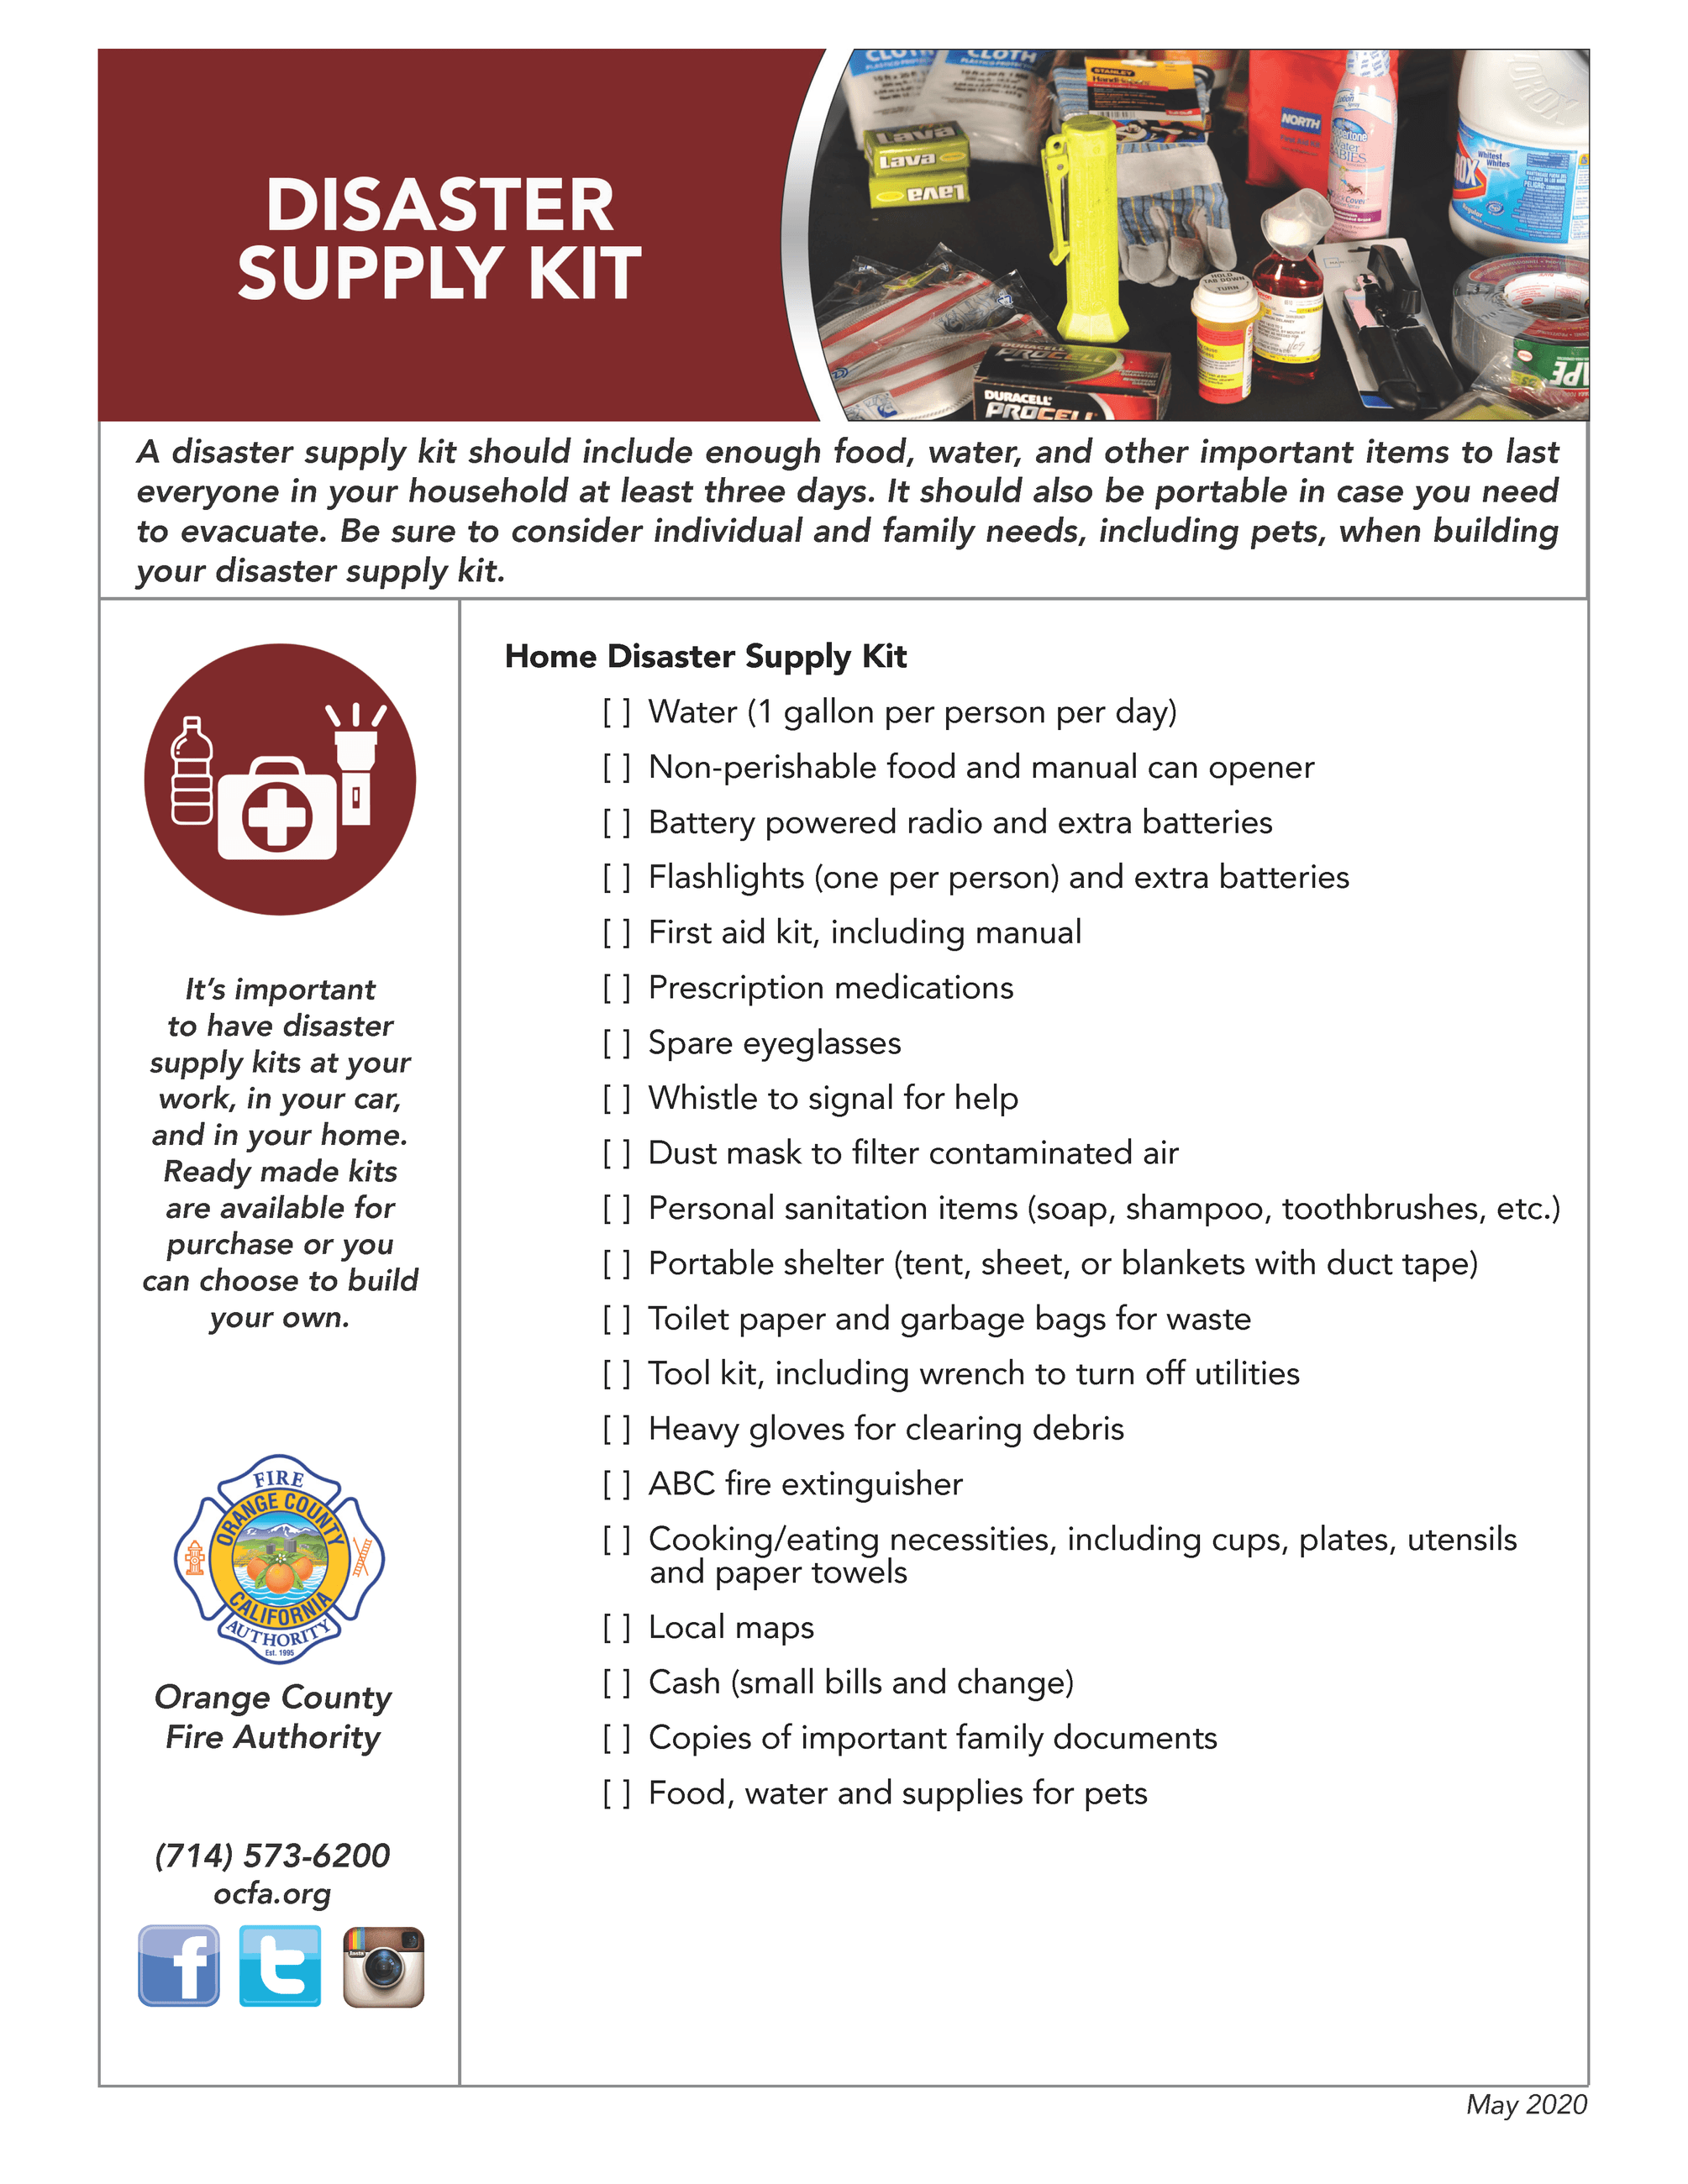 OCFA - Disaster Supply Kit